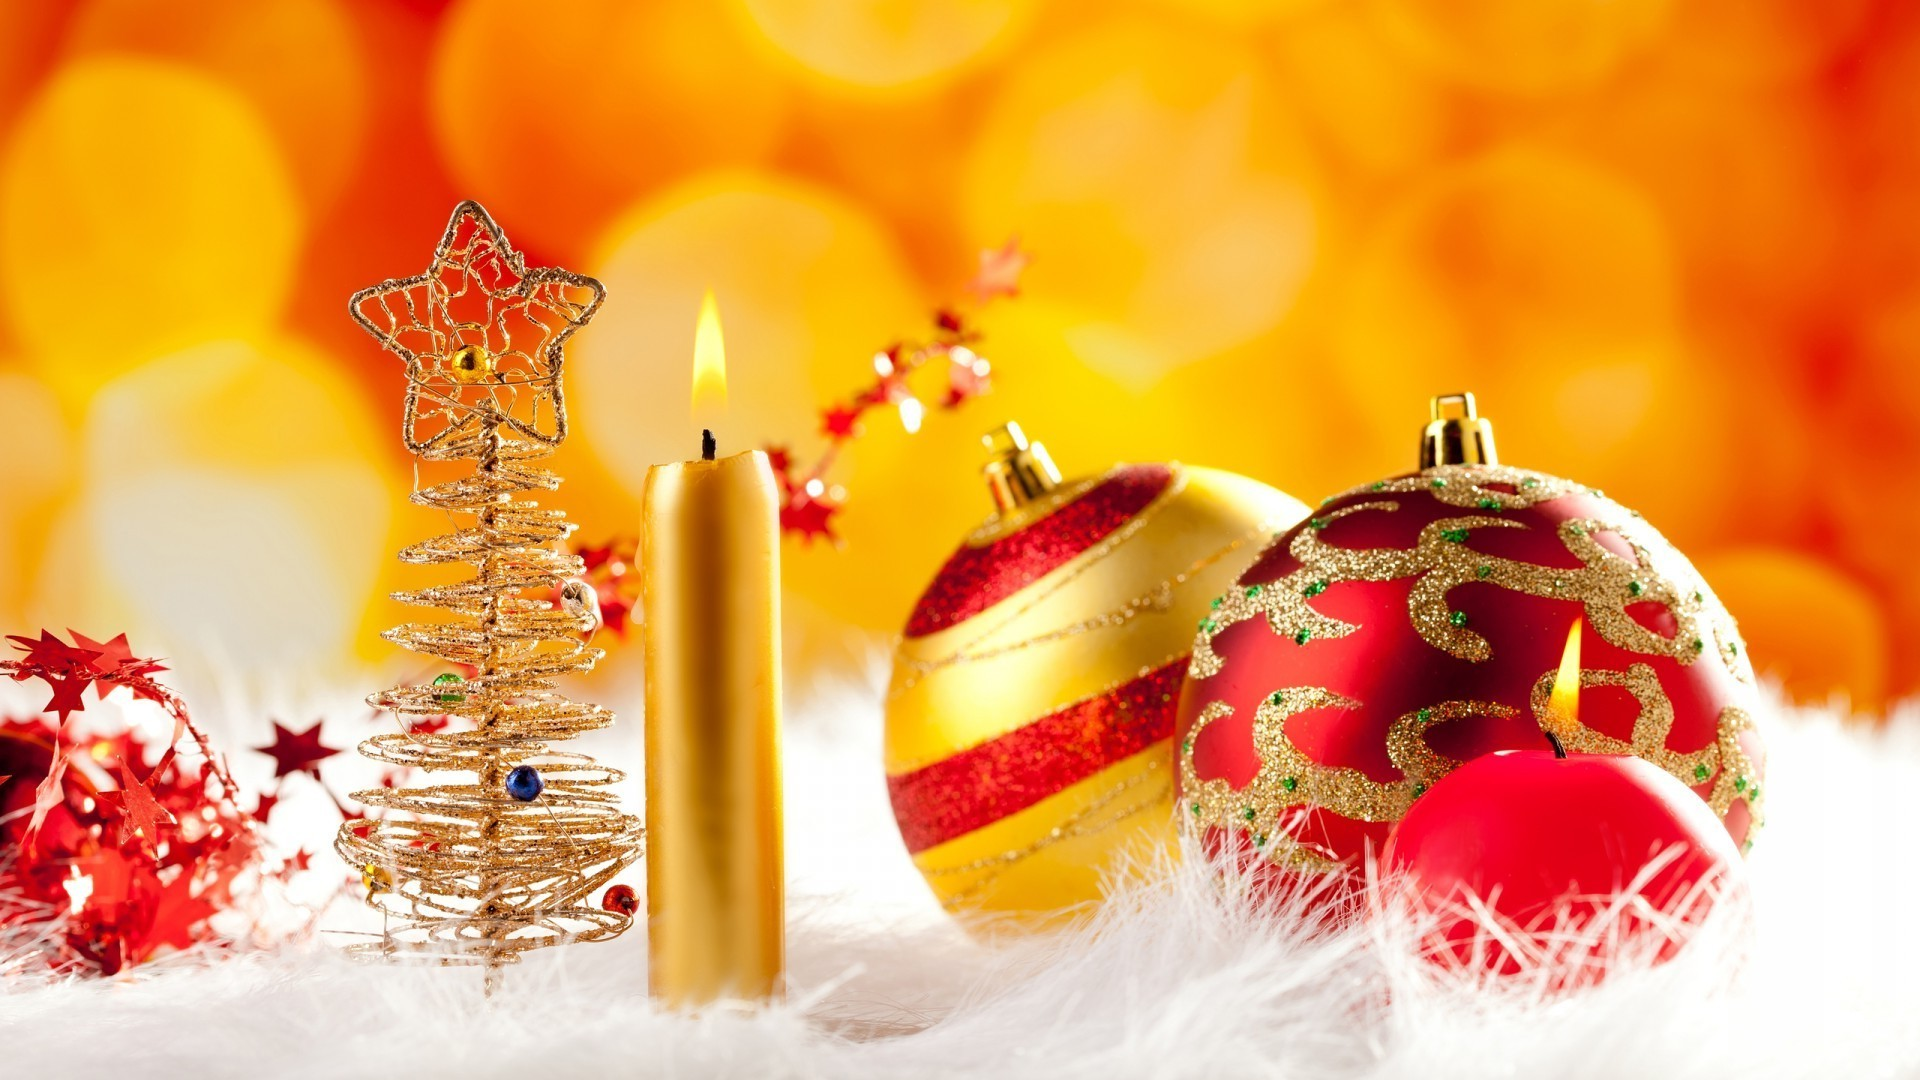 new year christmas winter decoration shining celebration gold thread candle merry bright ball traditional bow glisten ornate season